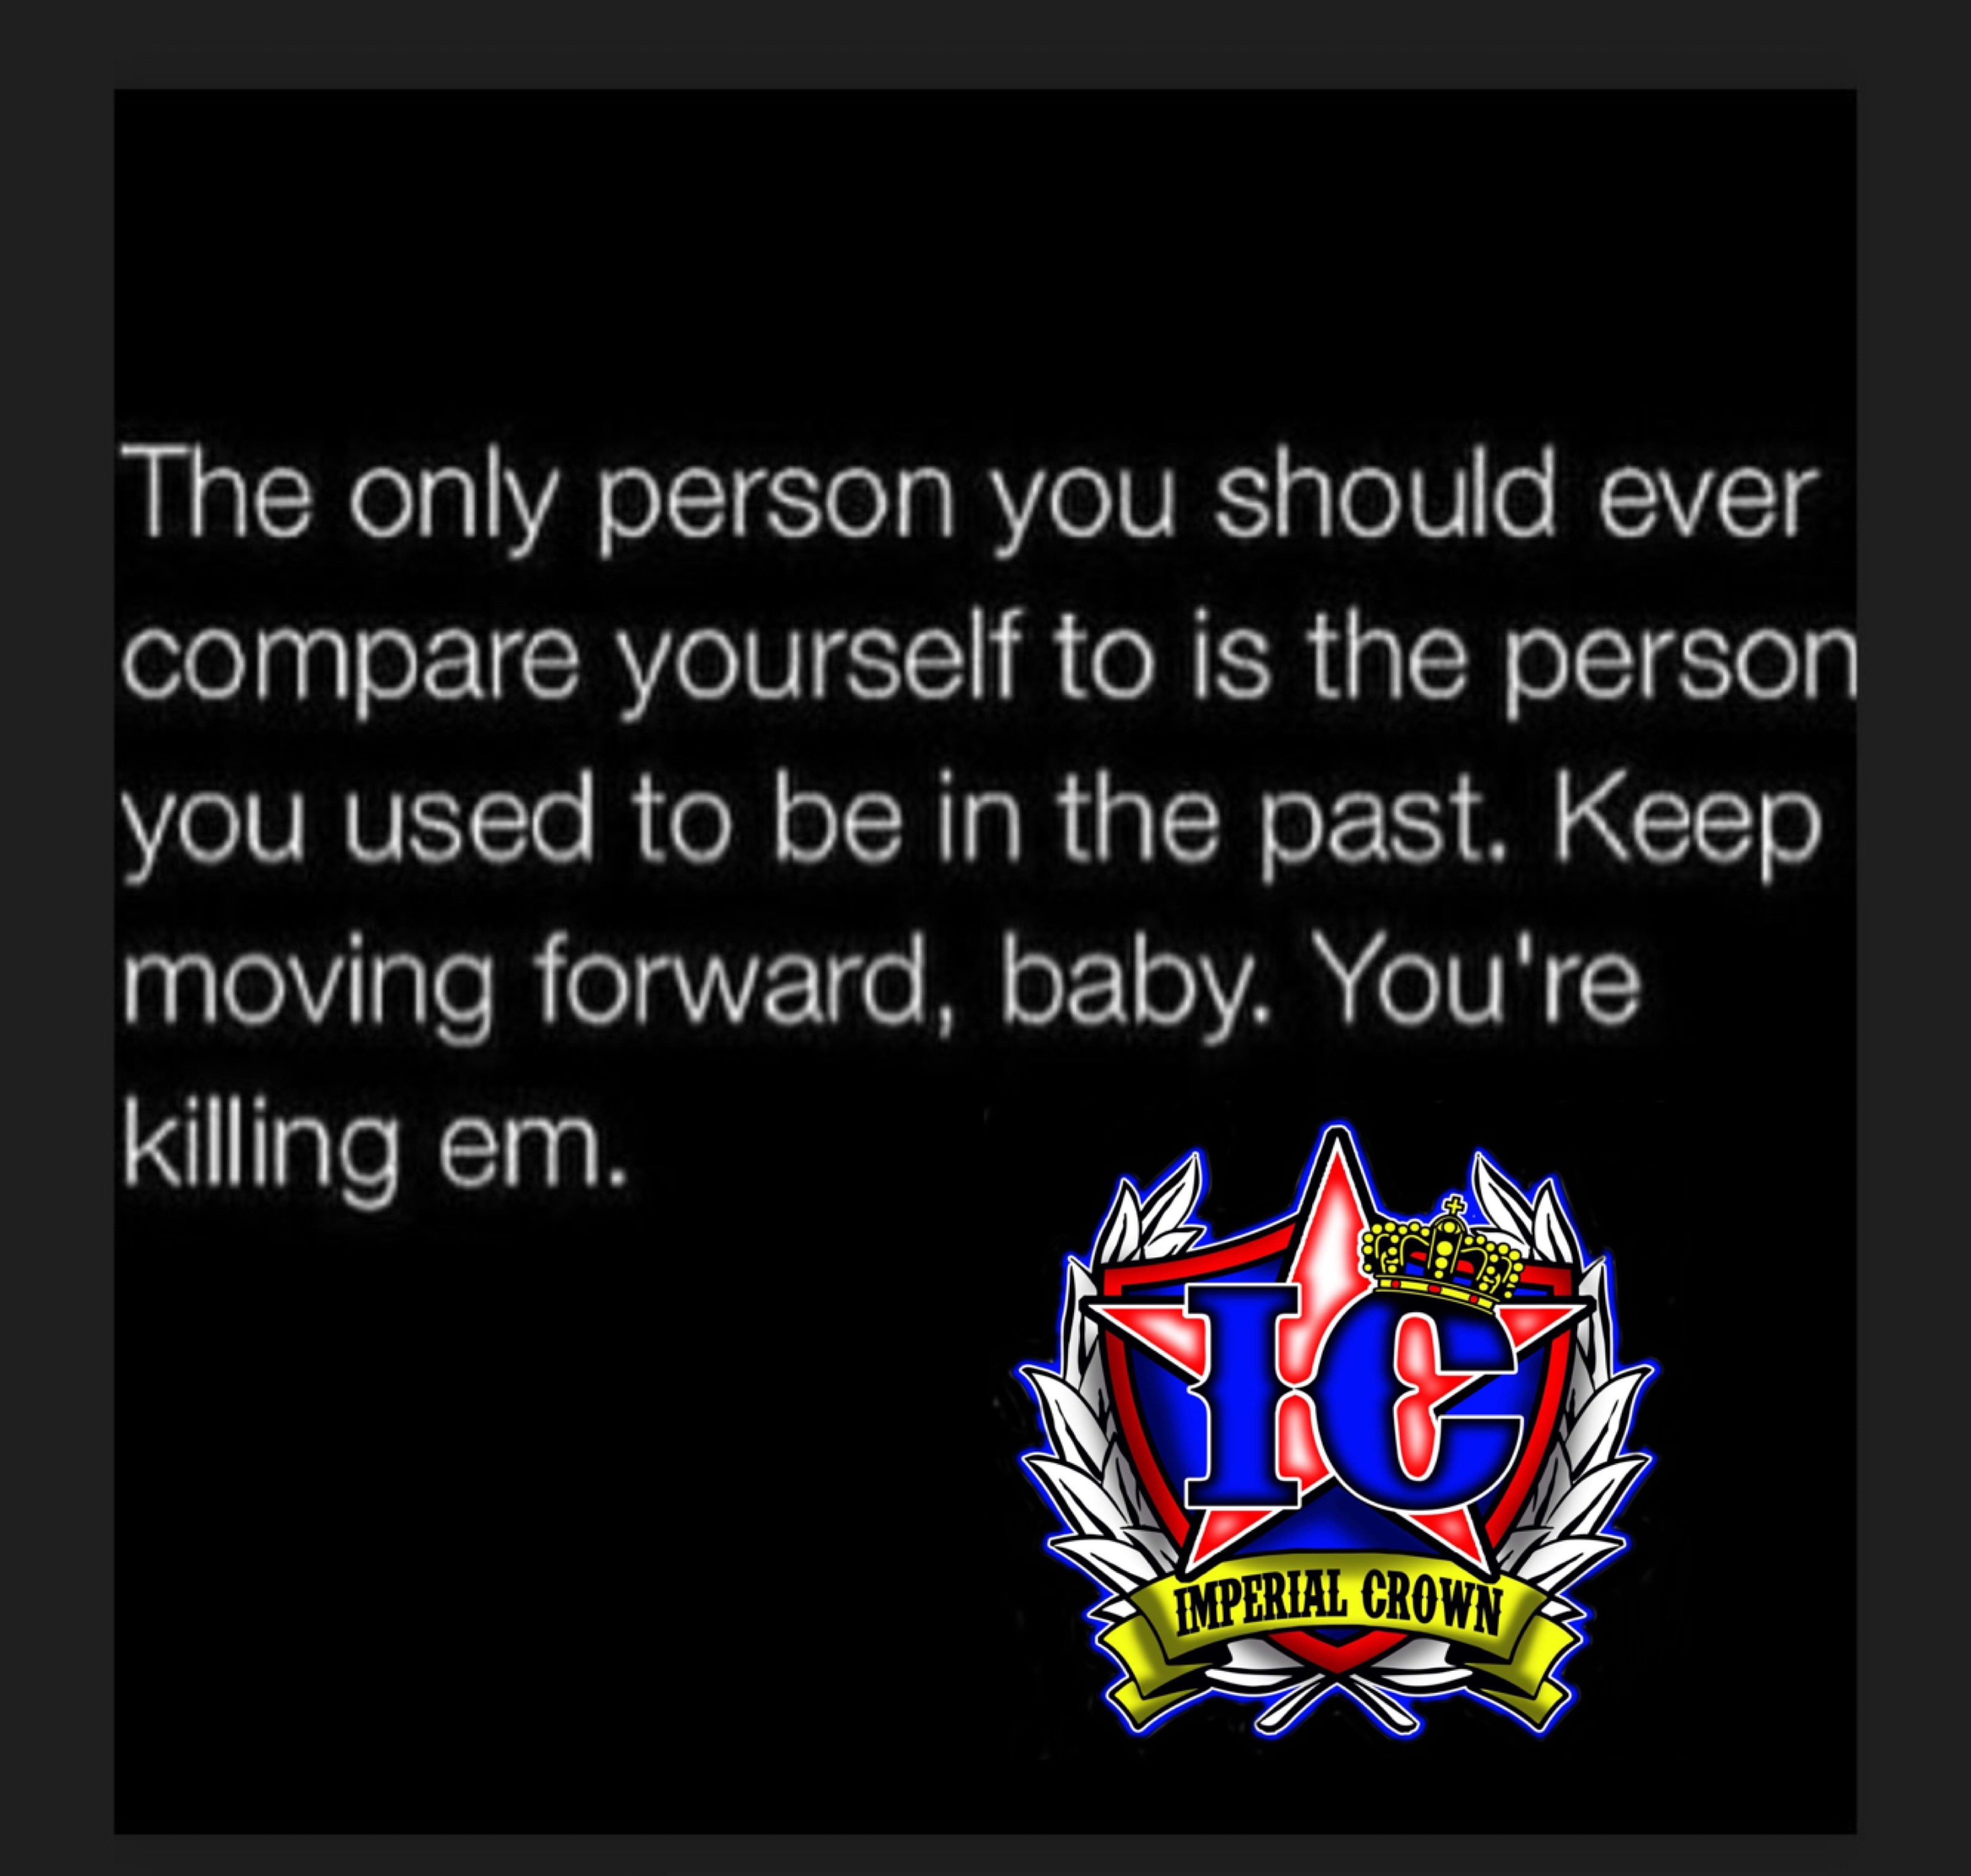 The only person you should ever compare yourself to is the person you used to be in the past